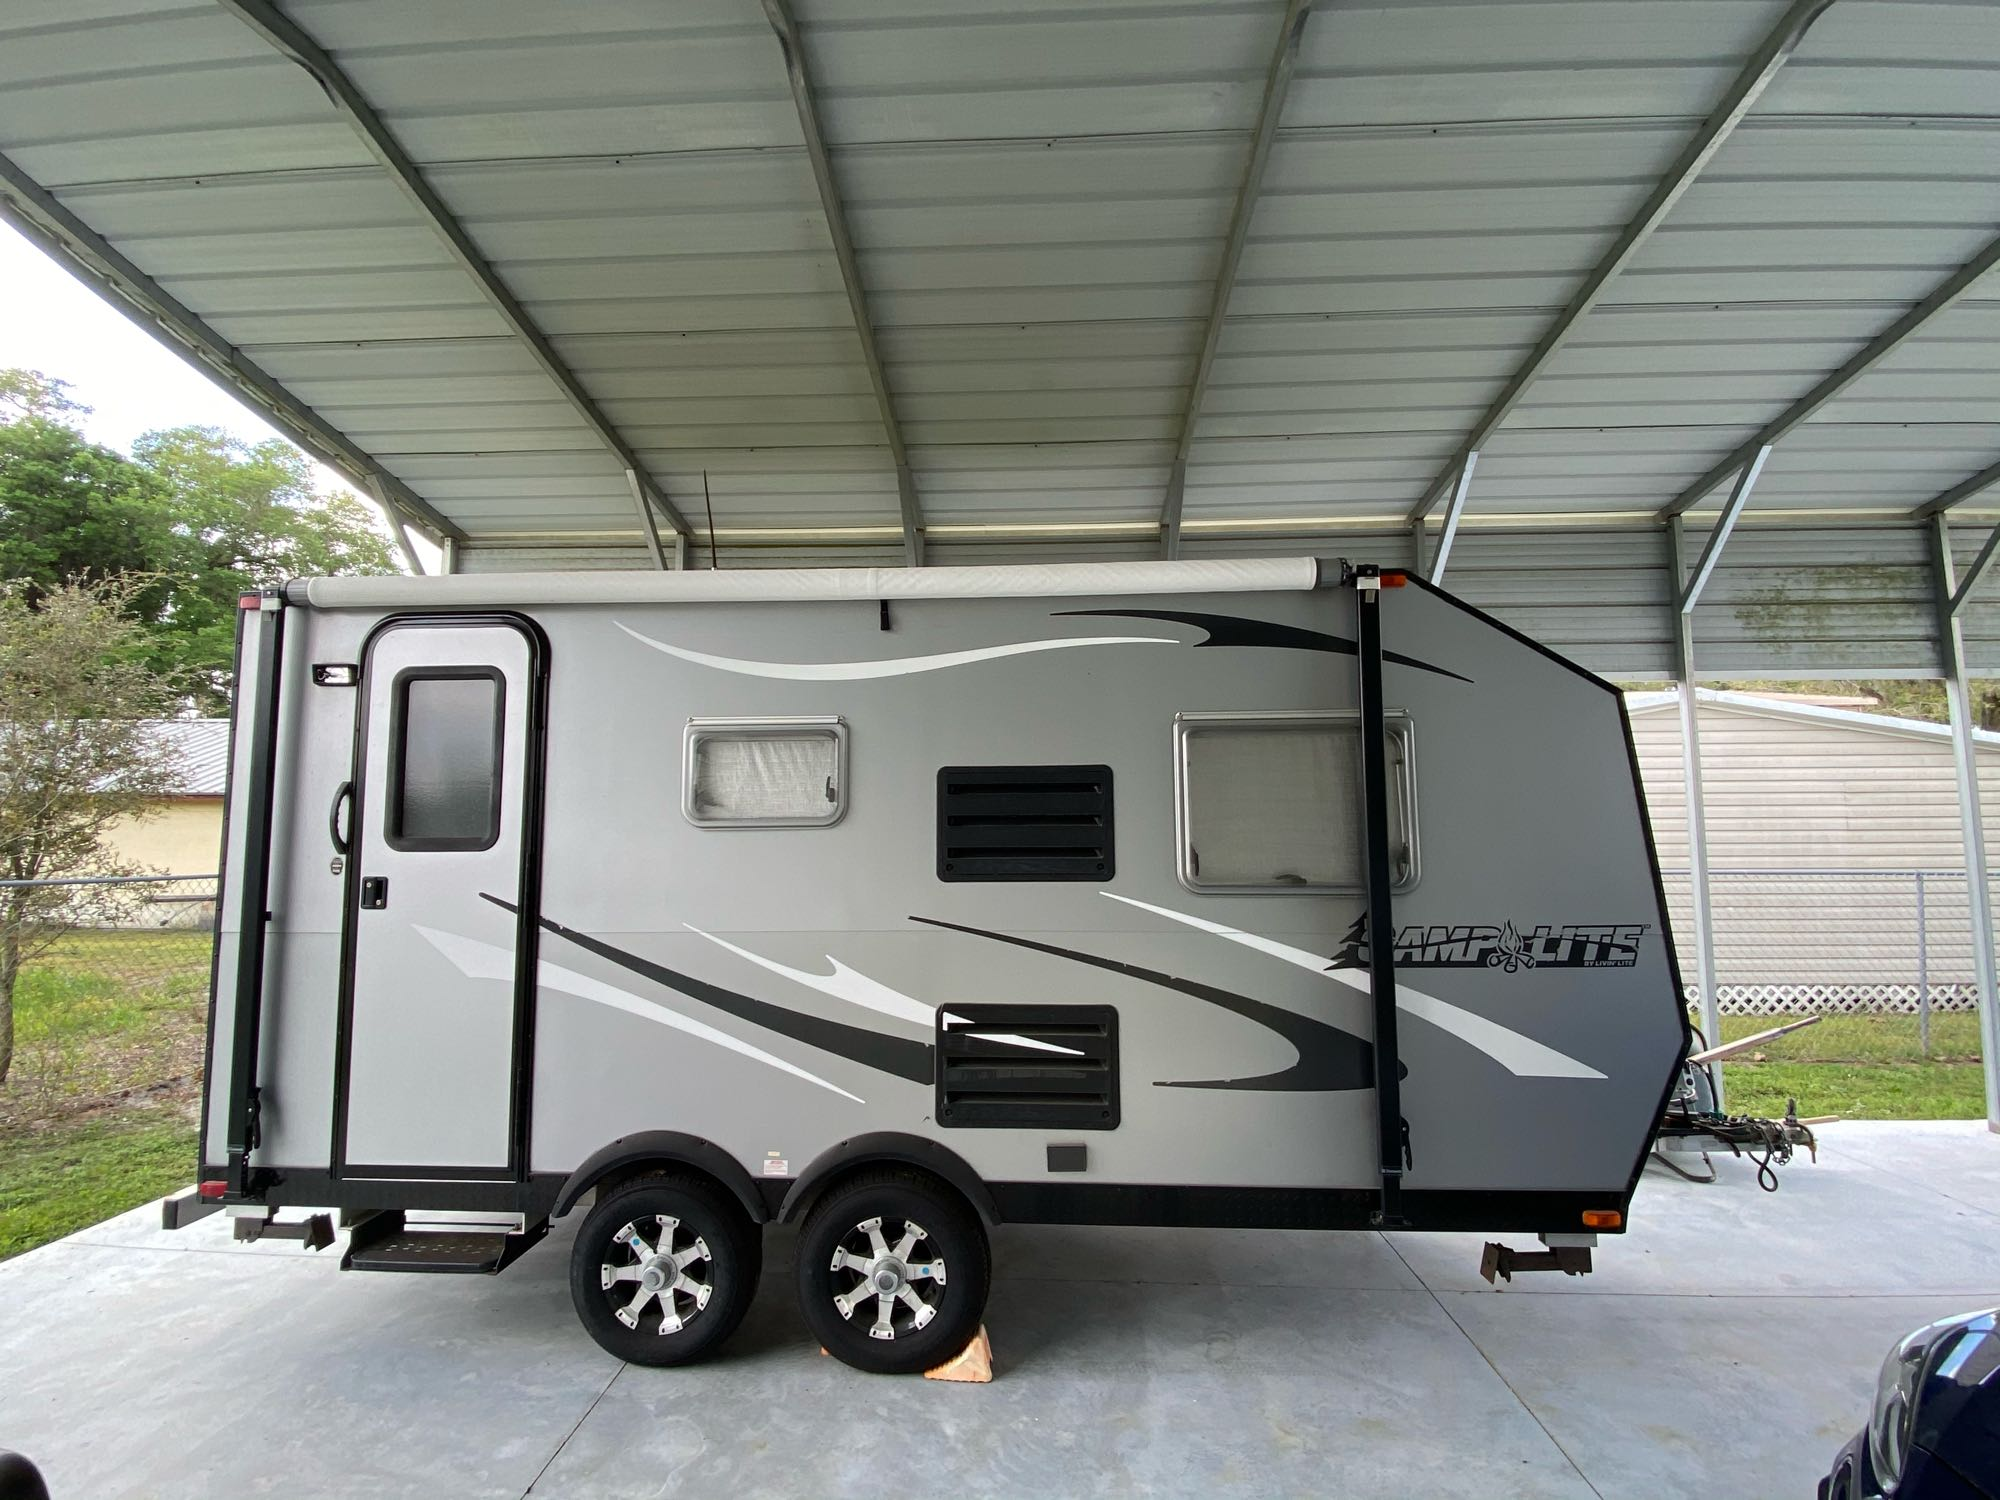 A nice lightweight travel trailer!  Easy to tow and park!. Livin' Lite Camplite 2012